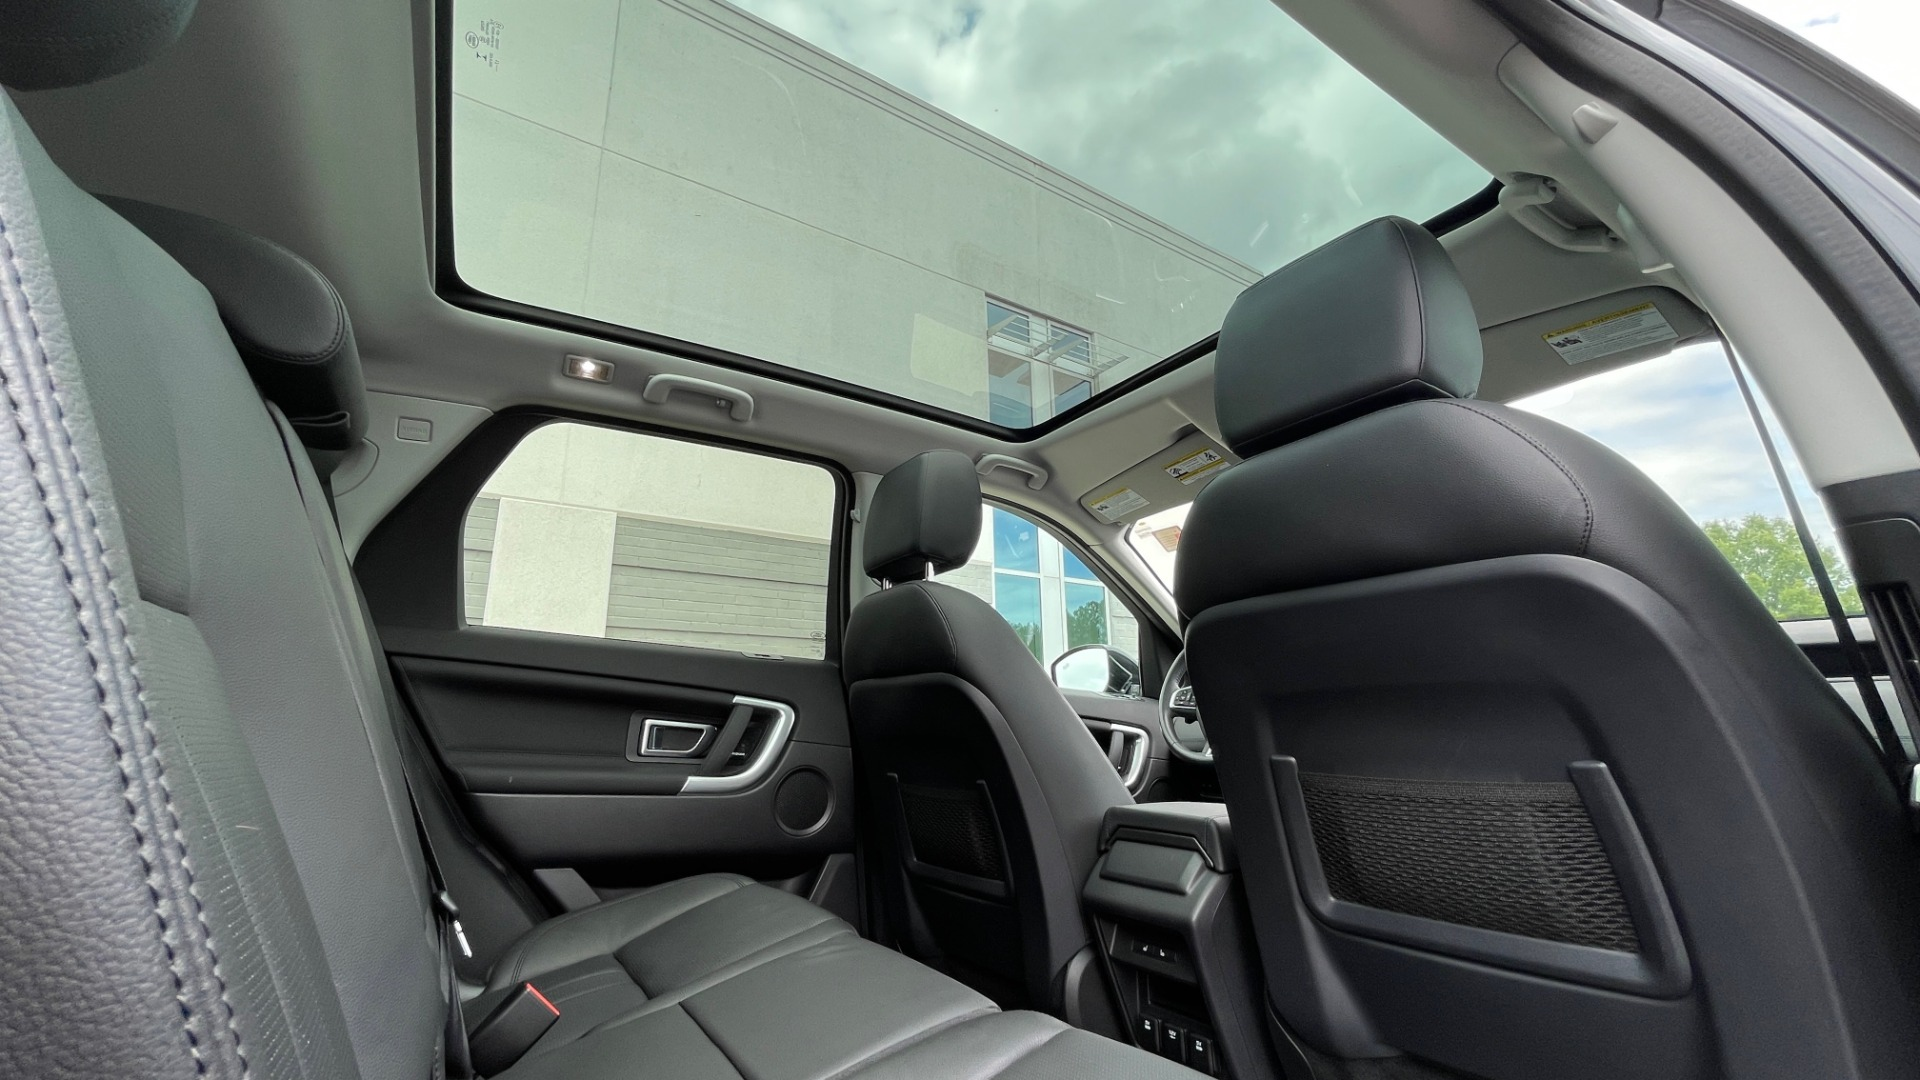 Used 2018 Land Rover DISCOVERY SPORT HSE 4WD / NAV / PANO-ROOF / MERIDIAN SND / HTD STS / LANE ASST / REARVIEW for sale $34,995 at Formula Imports in Charlotte NC 28227 67